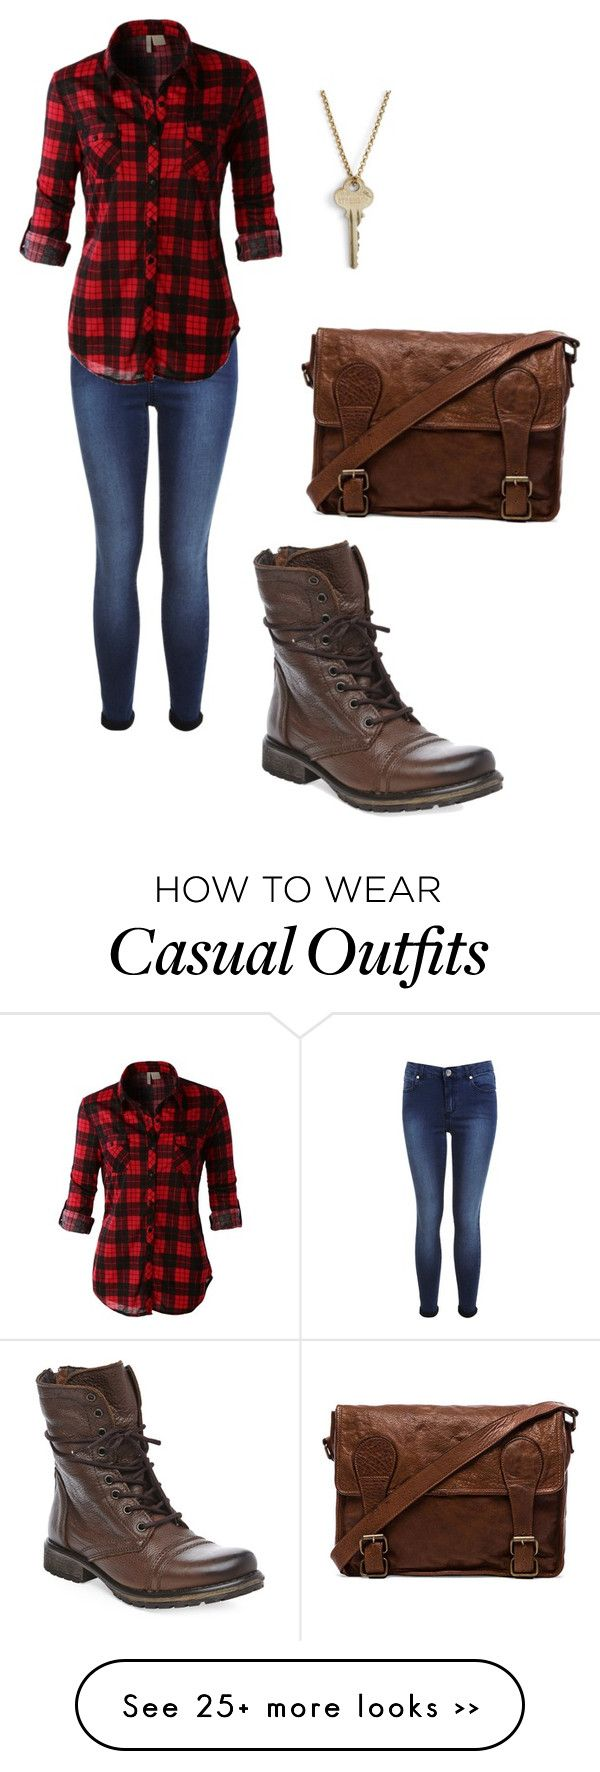 """Cute and Casual"" by lauryn4231 on Polyvore featuring Miss Selfridge, LE3NO, Steve Madden, VIPARO and The Giving Keys"